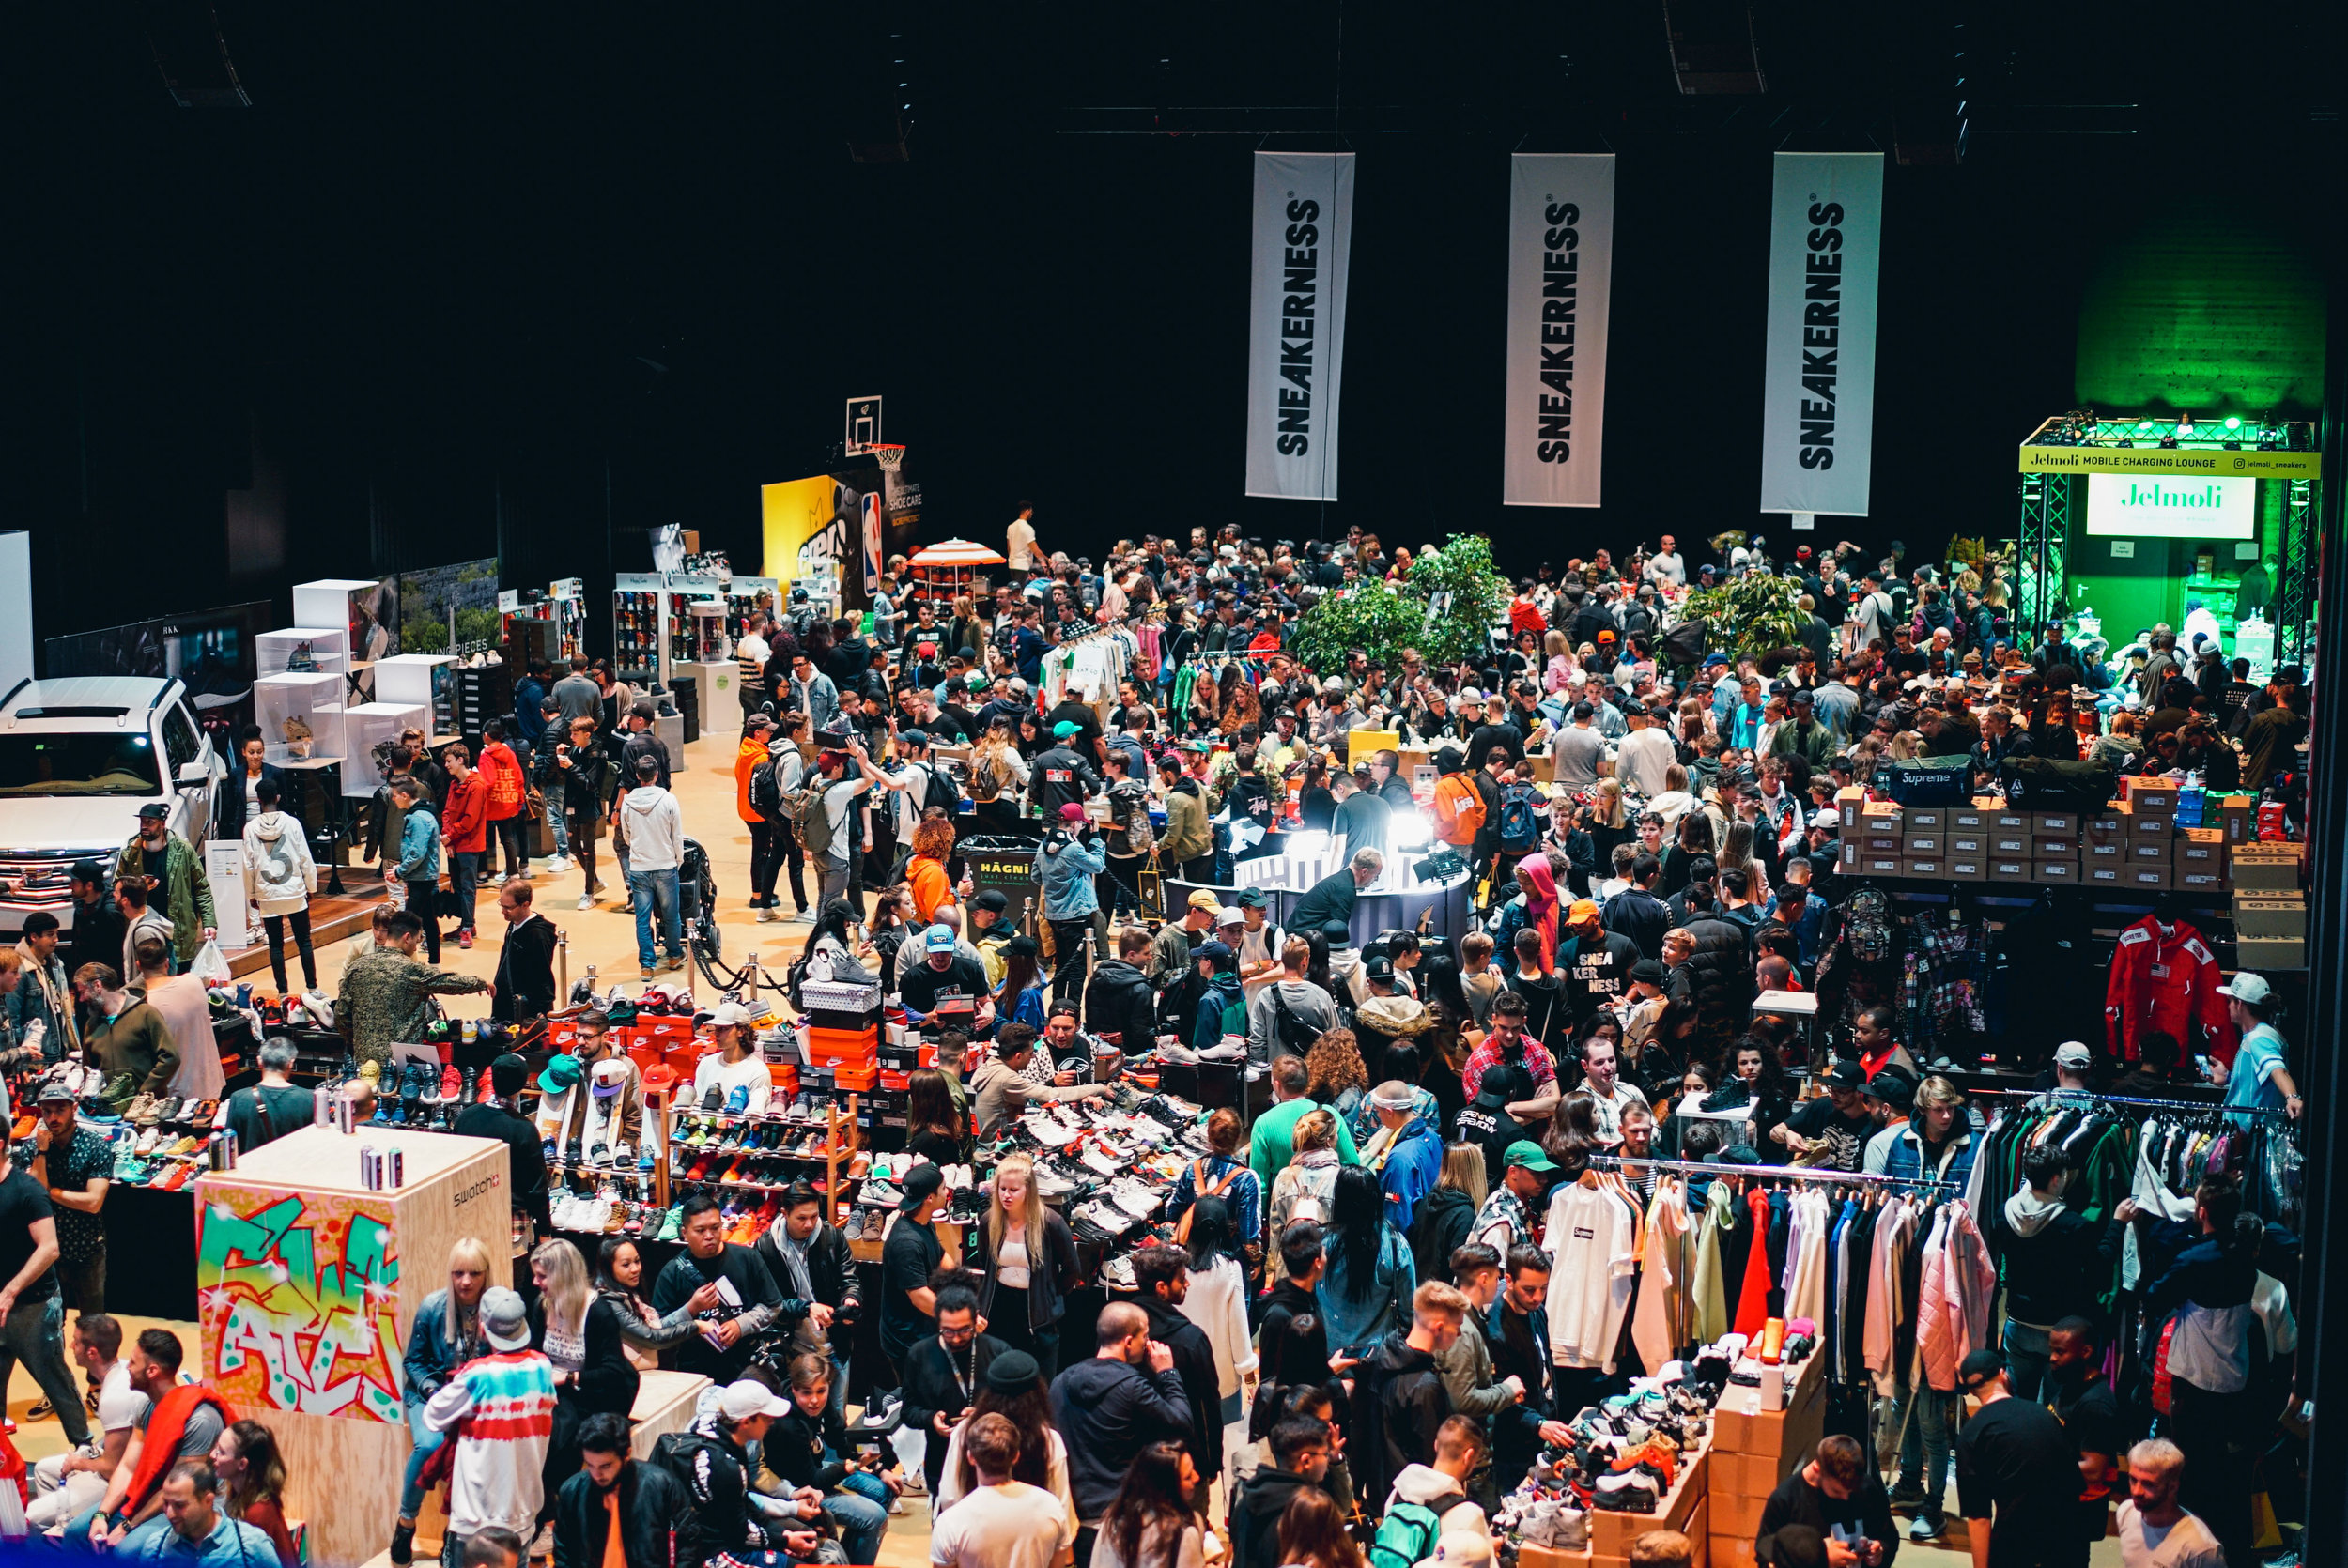 Sneakerness - Halle 622